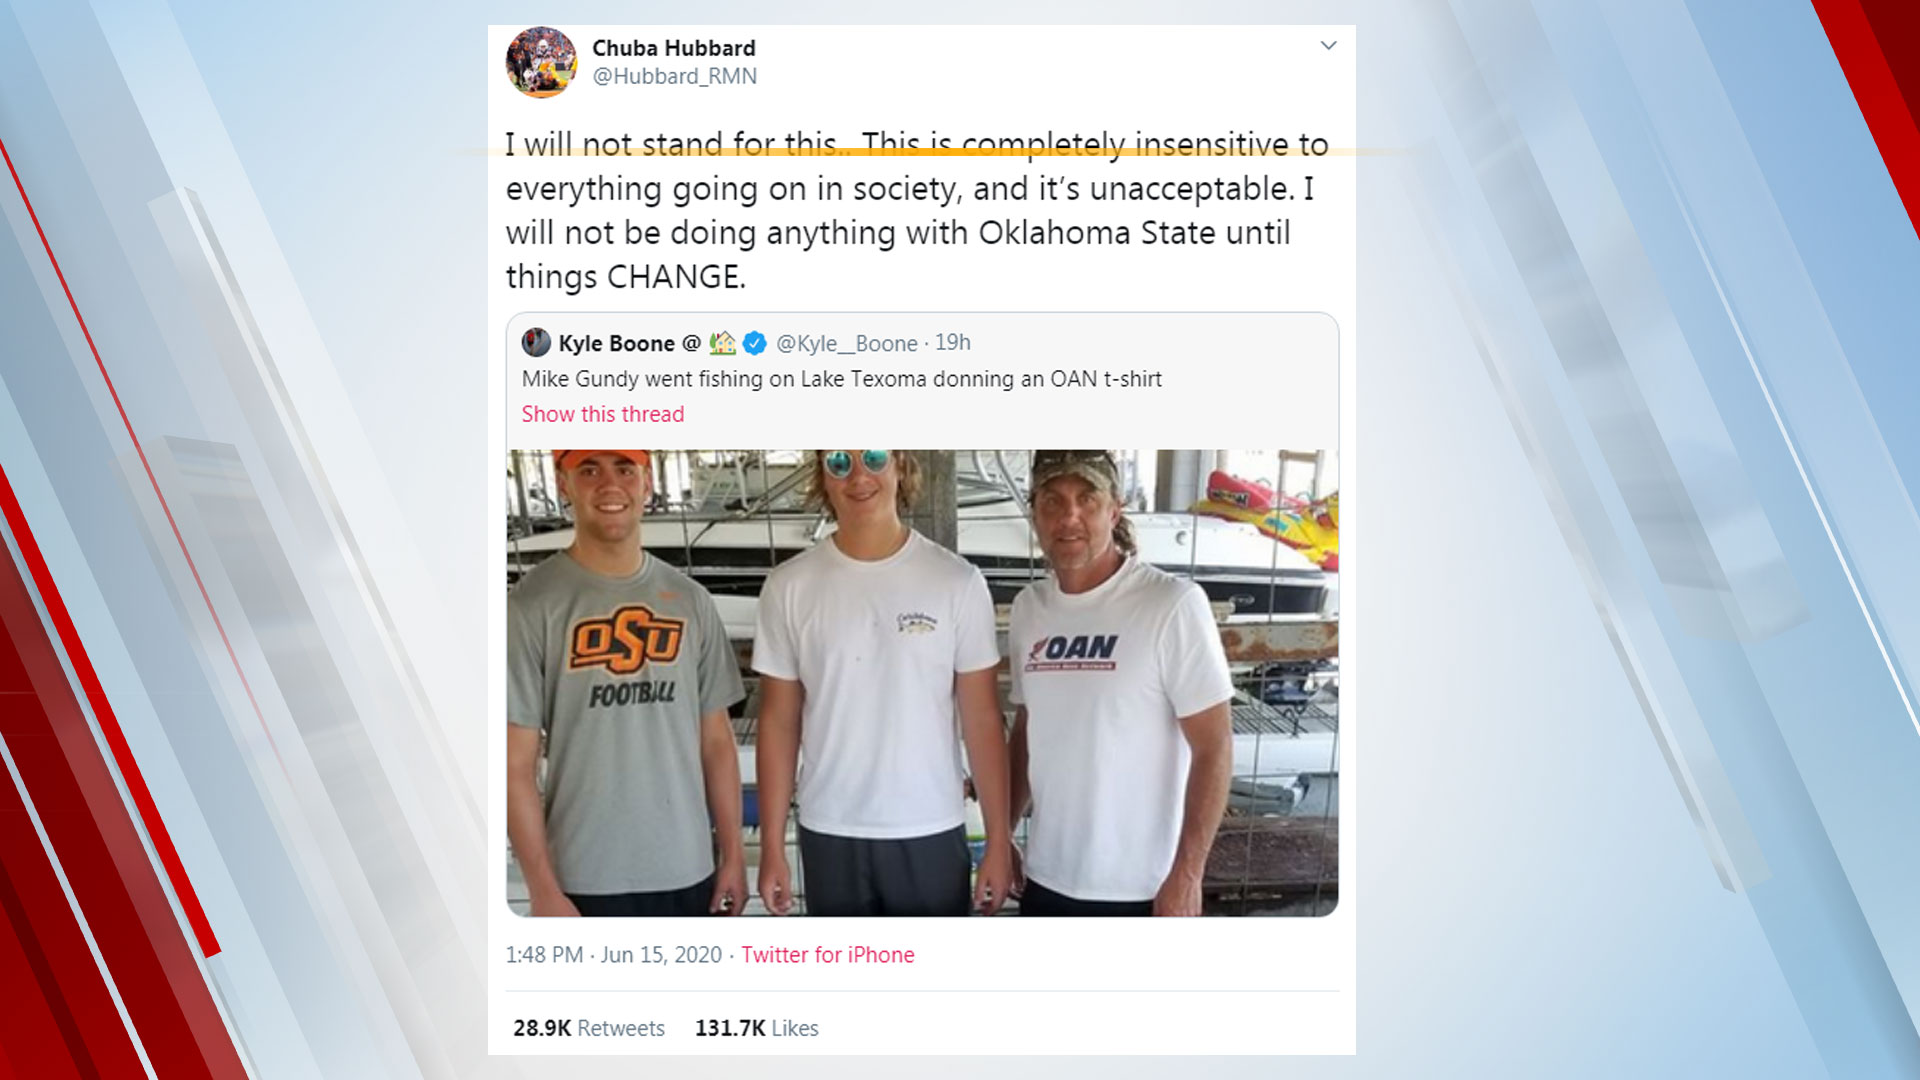 Mike Gundy Promises Change To OSU Football Program After Photo Of Him In Controversial Shirt